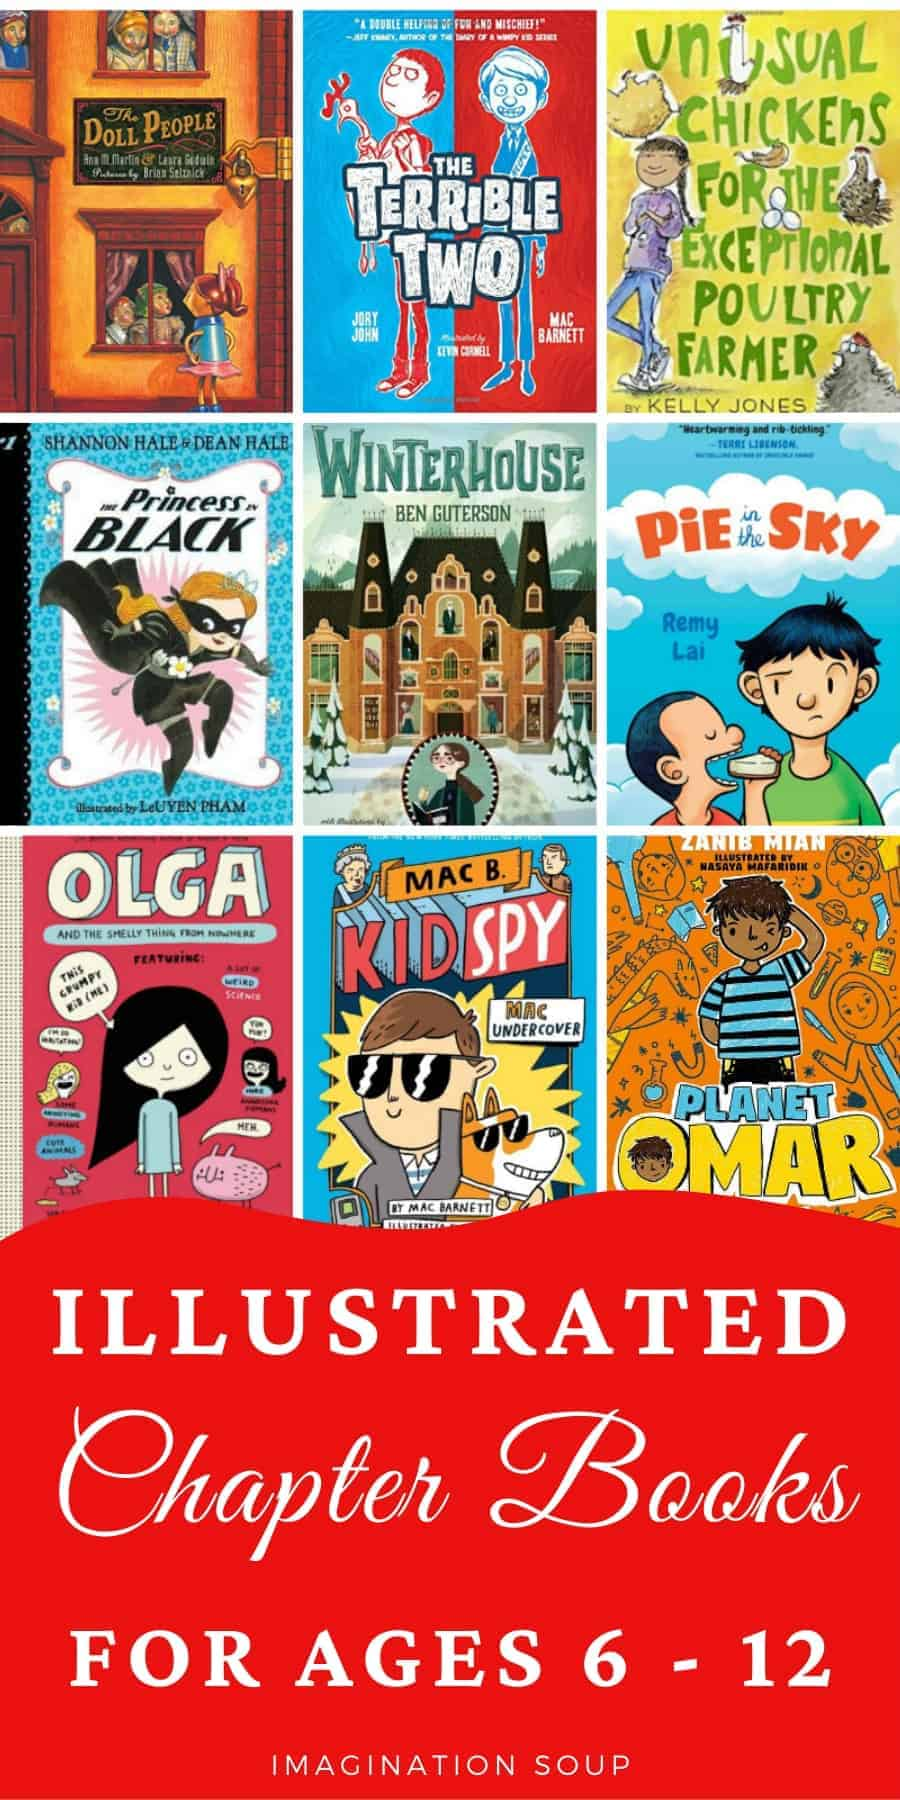 the best illustrated chapter books for kids ages 6 to 12